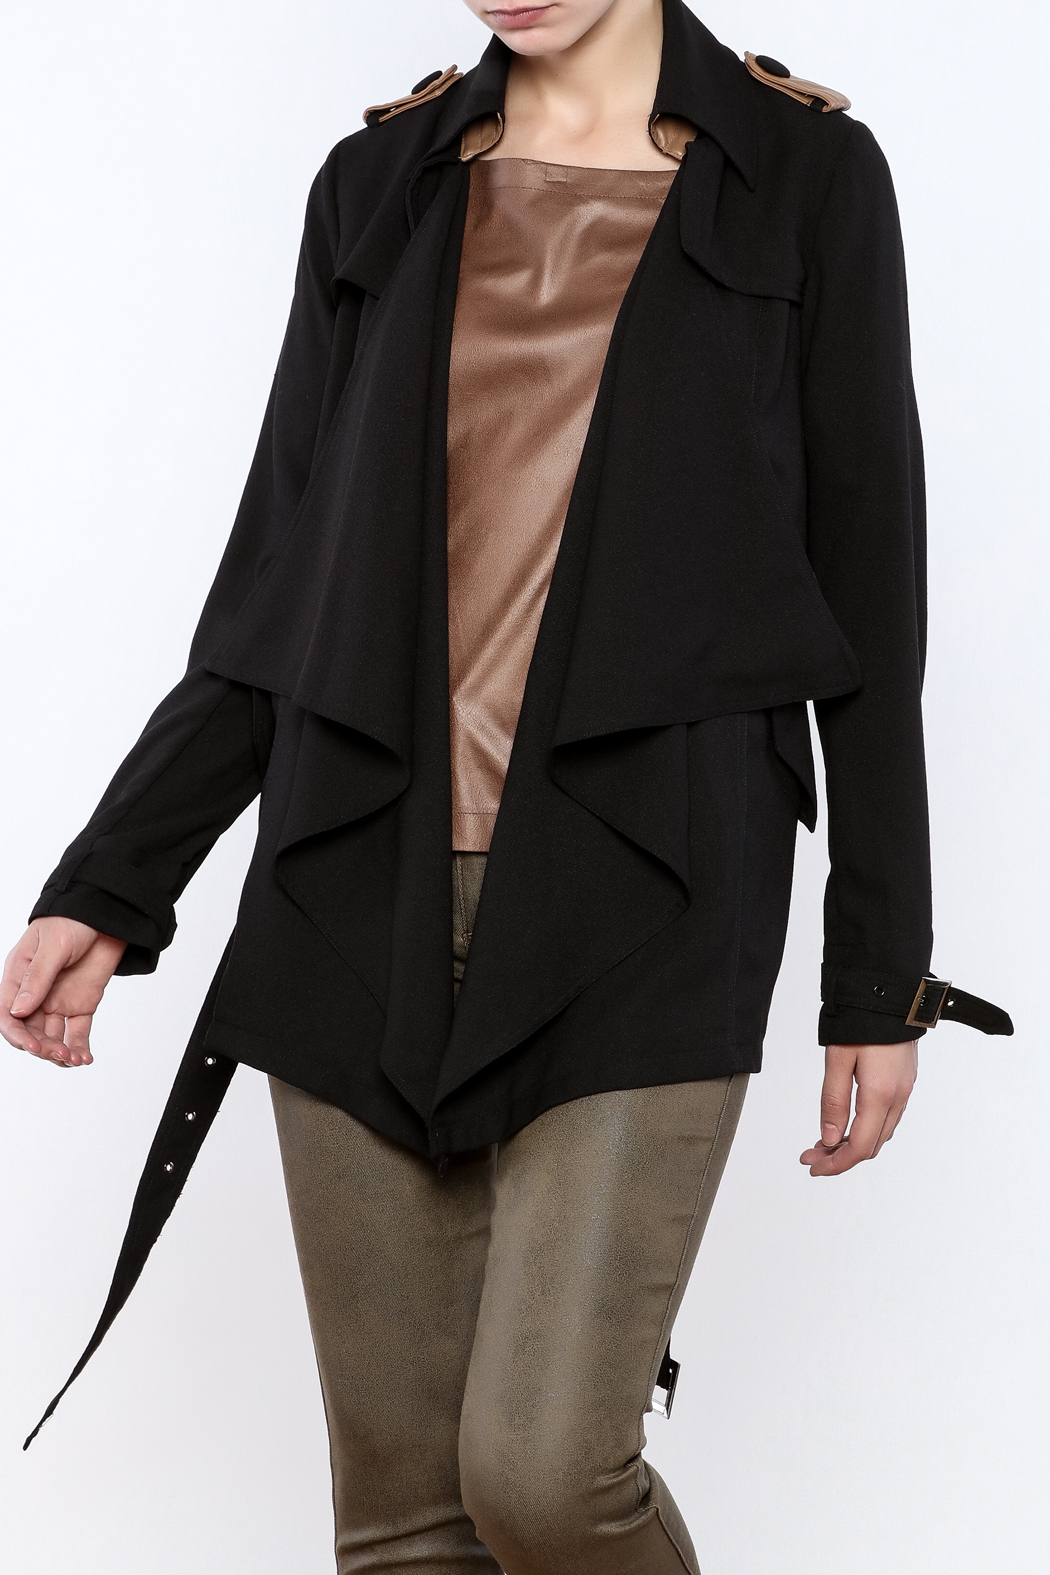 look jacket draped quick open front neiman th drapes mz marcus